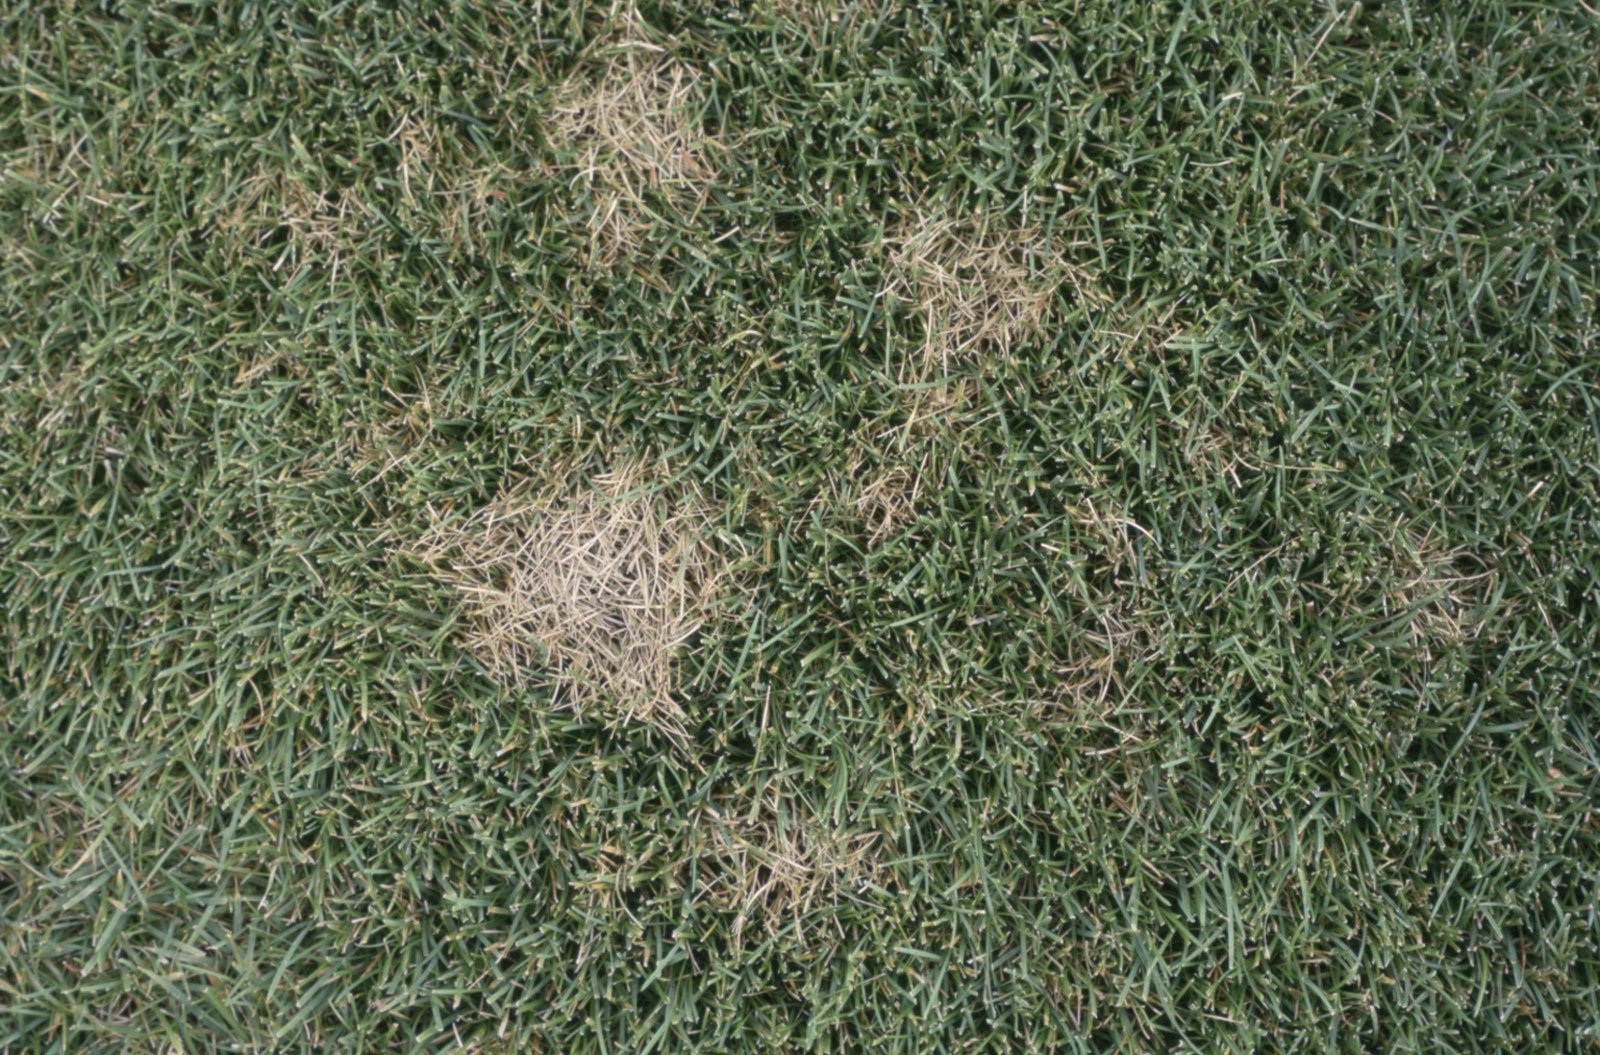 dollar spot - How To Get Rid Of Spider Webs On Grass